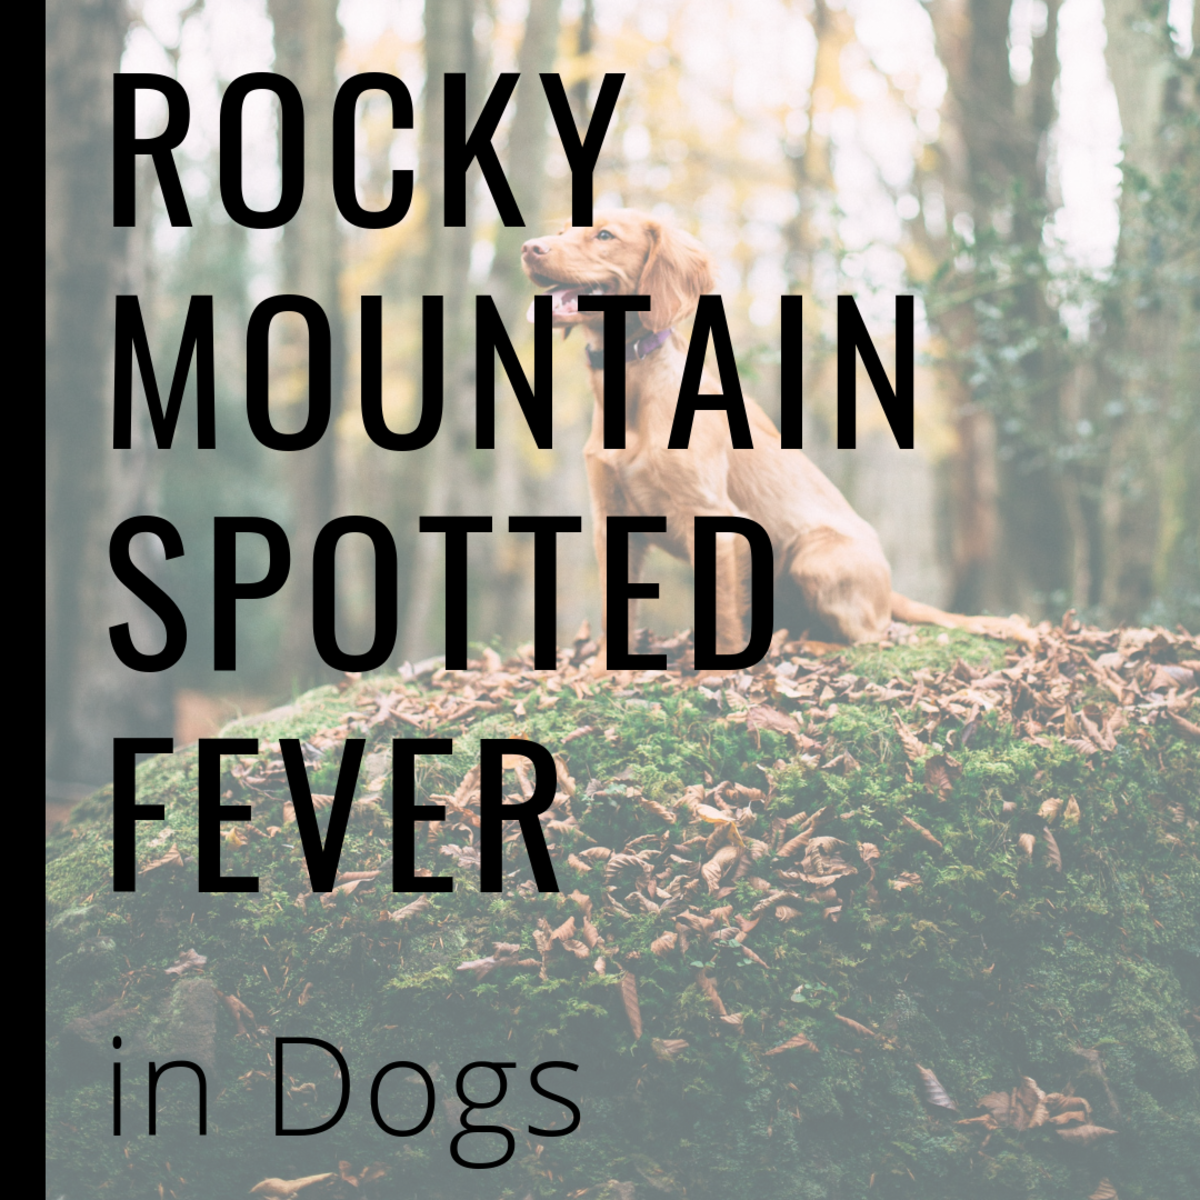 Rocky Mountain Fever in Dogs: Causes, Symptoms, and Treatment